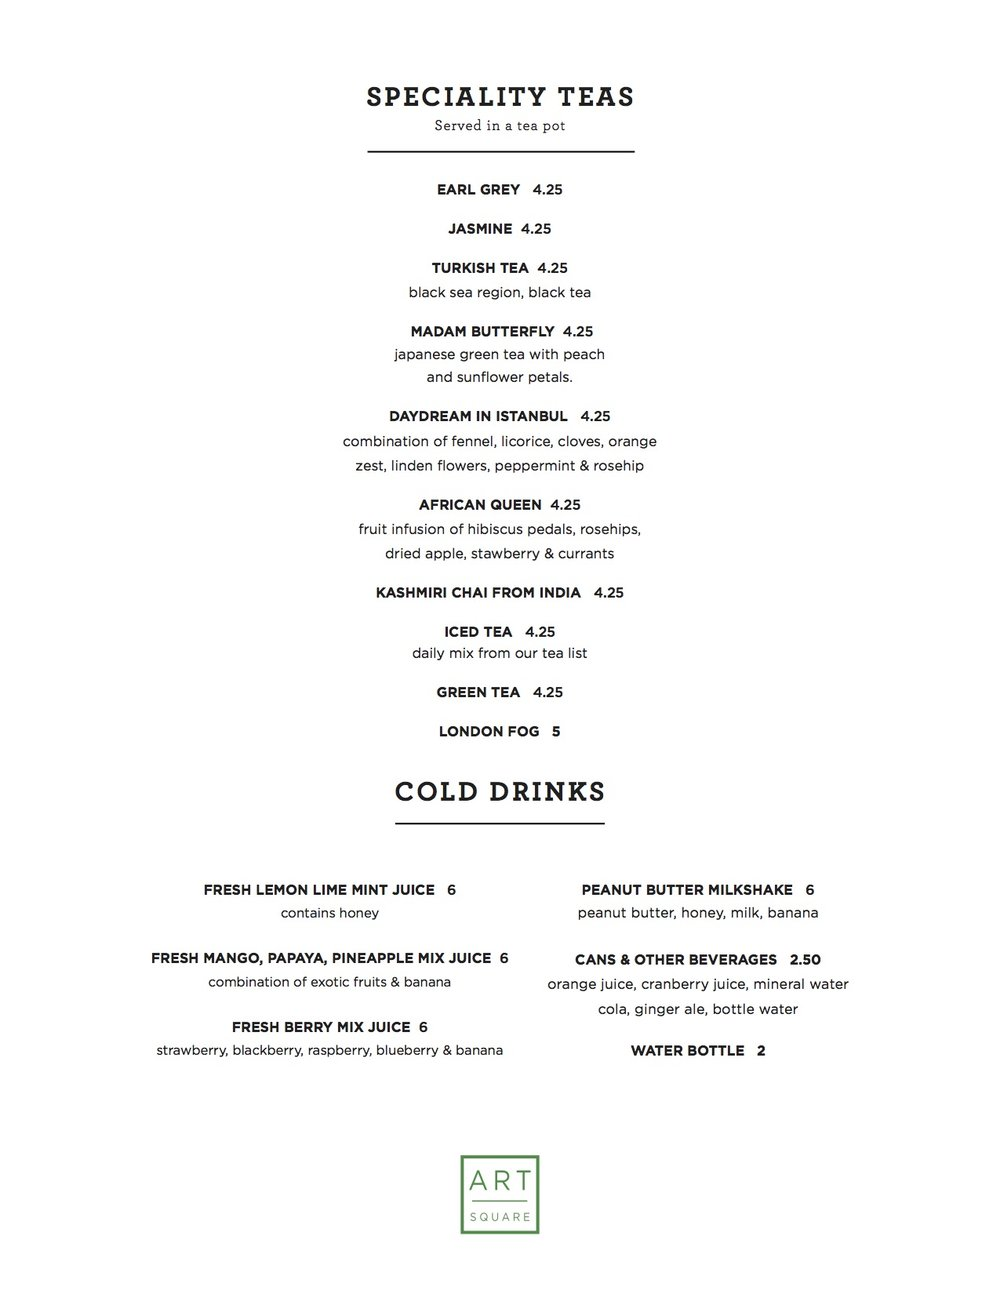 Art Square Menu final April 2016_new_Page_07.jpg